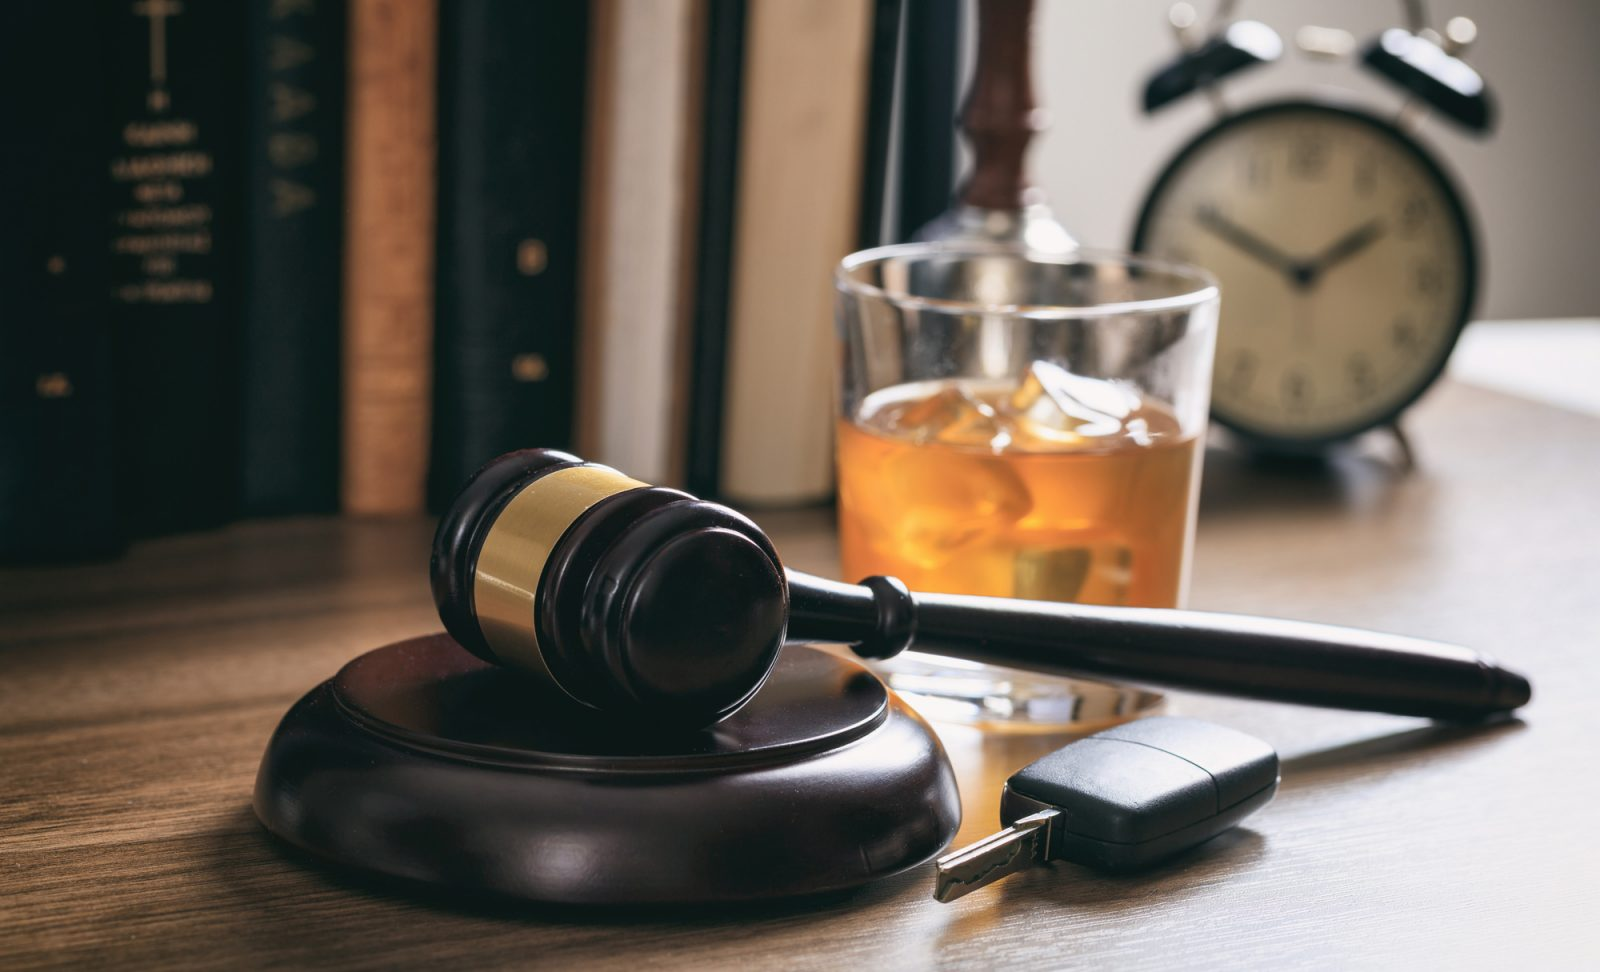 DUI case, Law gavel, alcohol and car keys